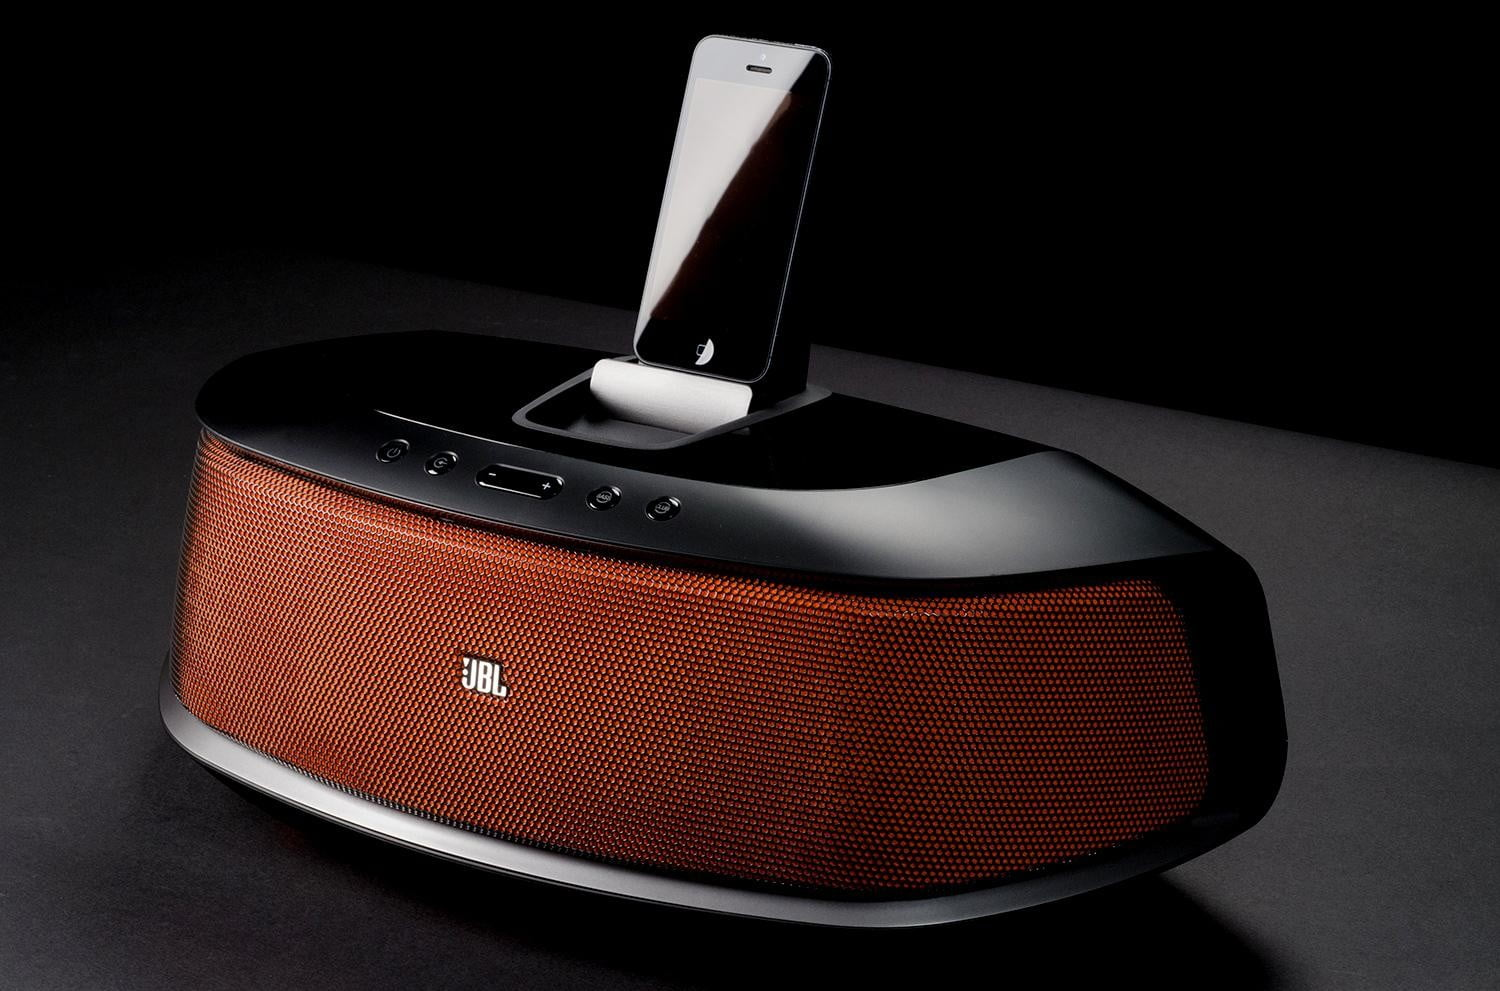 JBL speaker dock review phone front angle